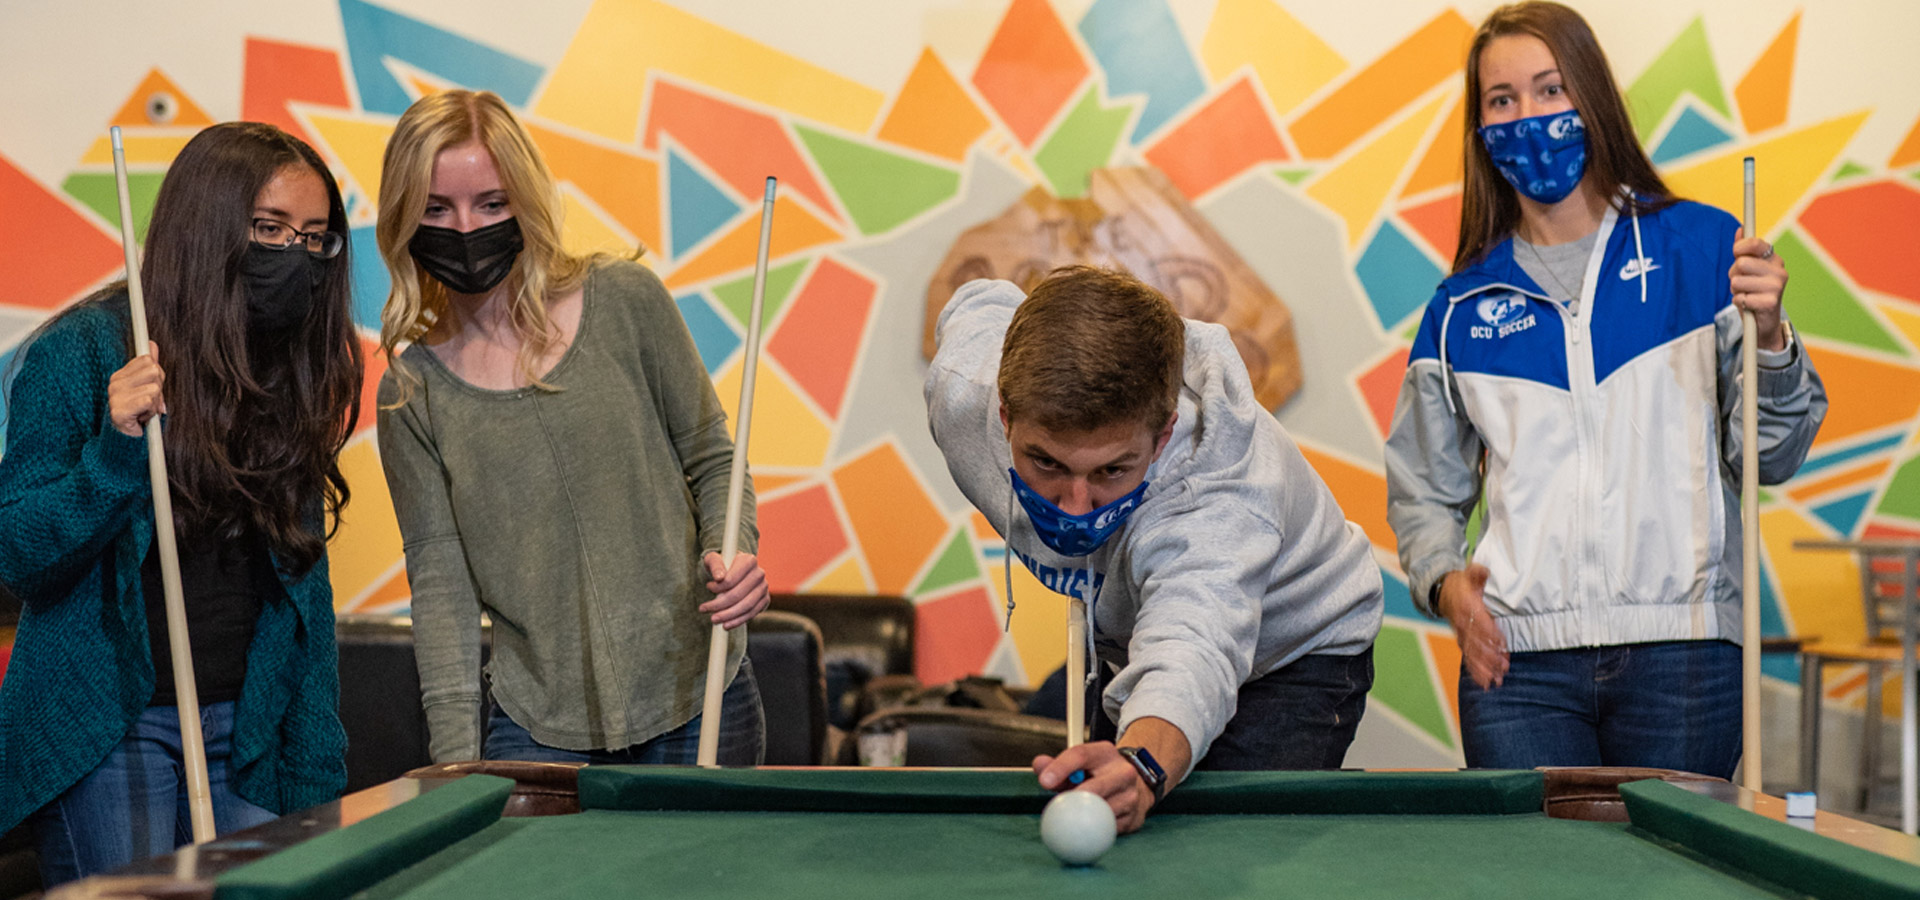 Stundents Wearing Masks and Playing Pool on Campus